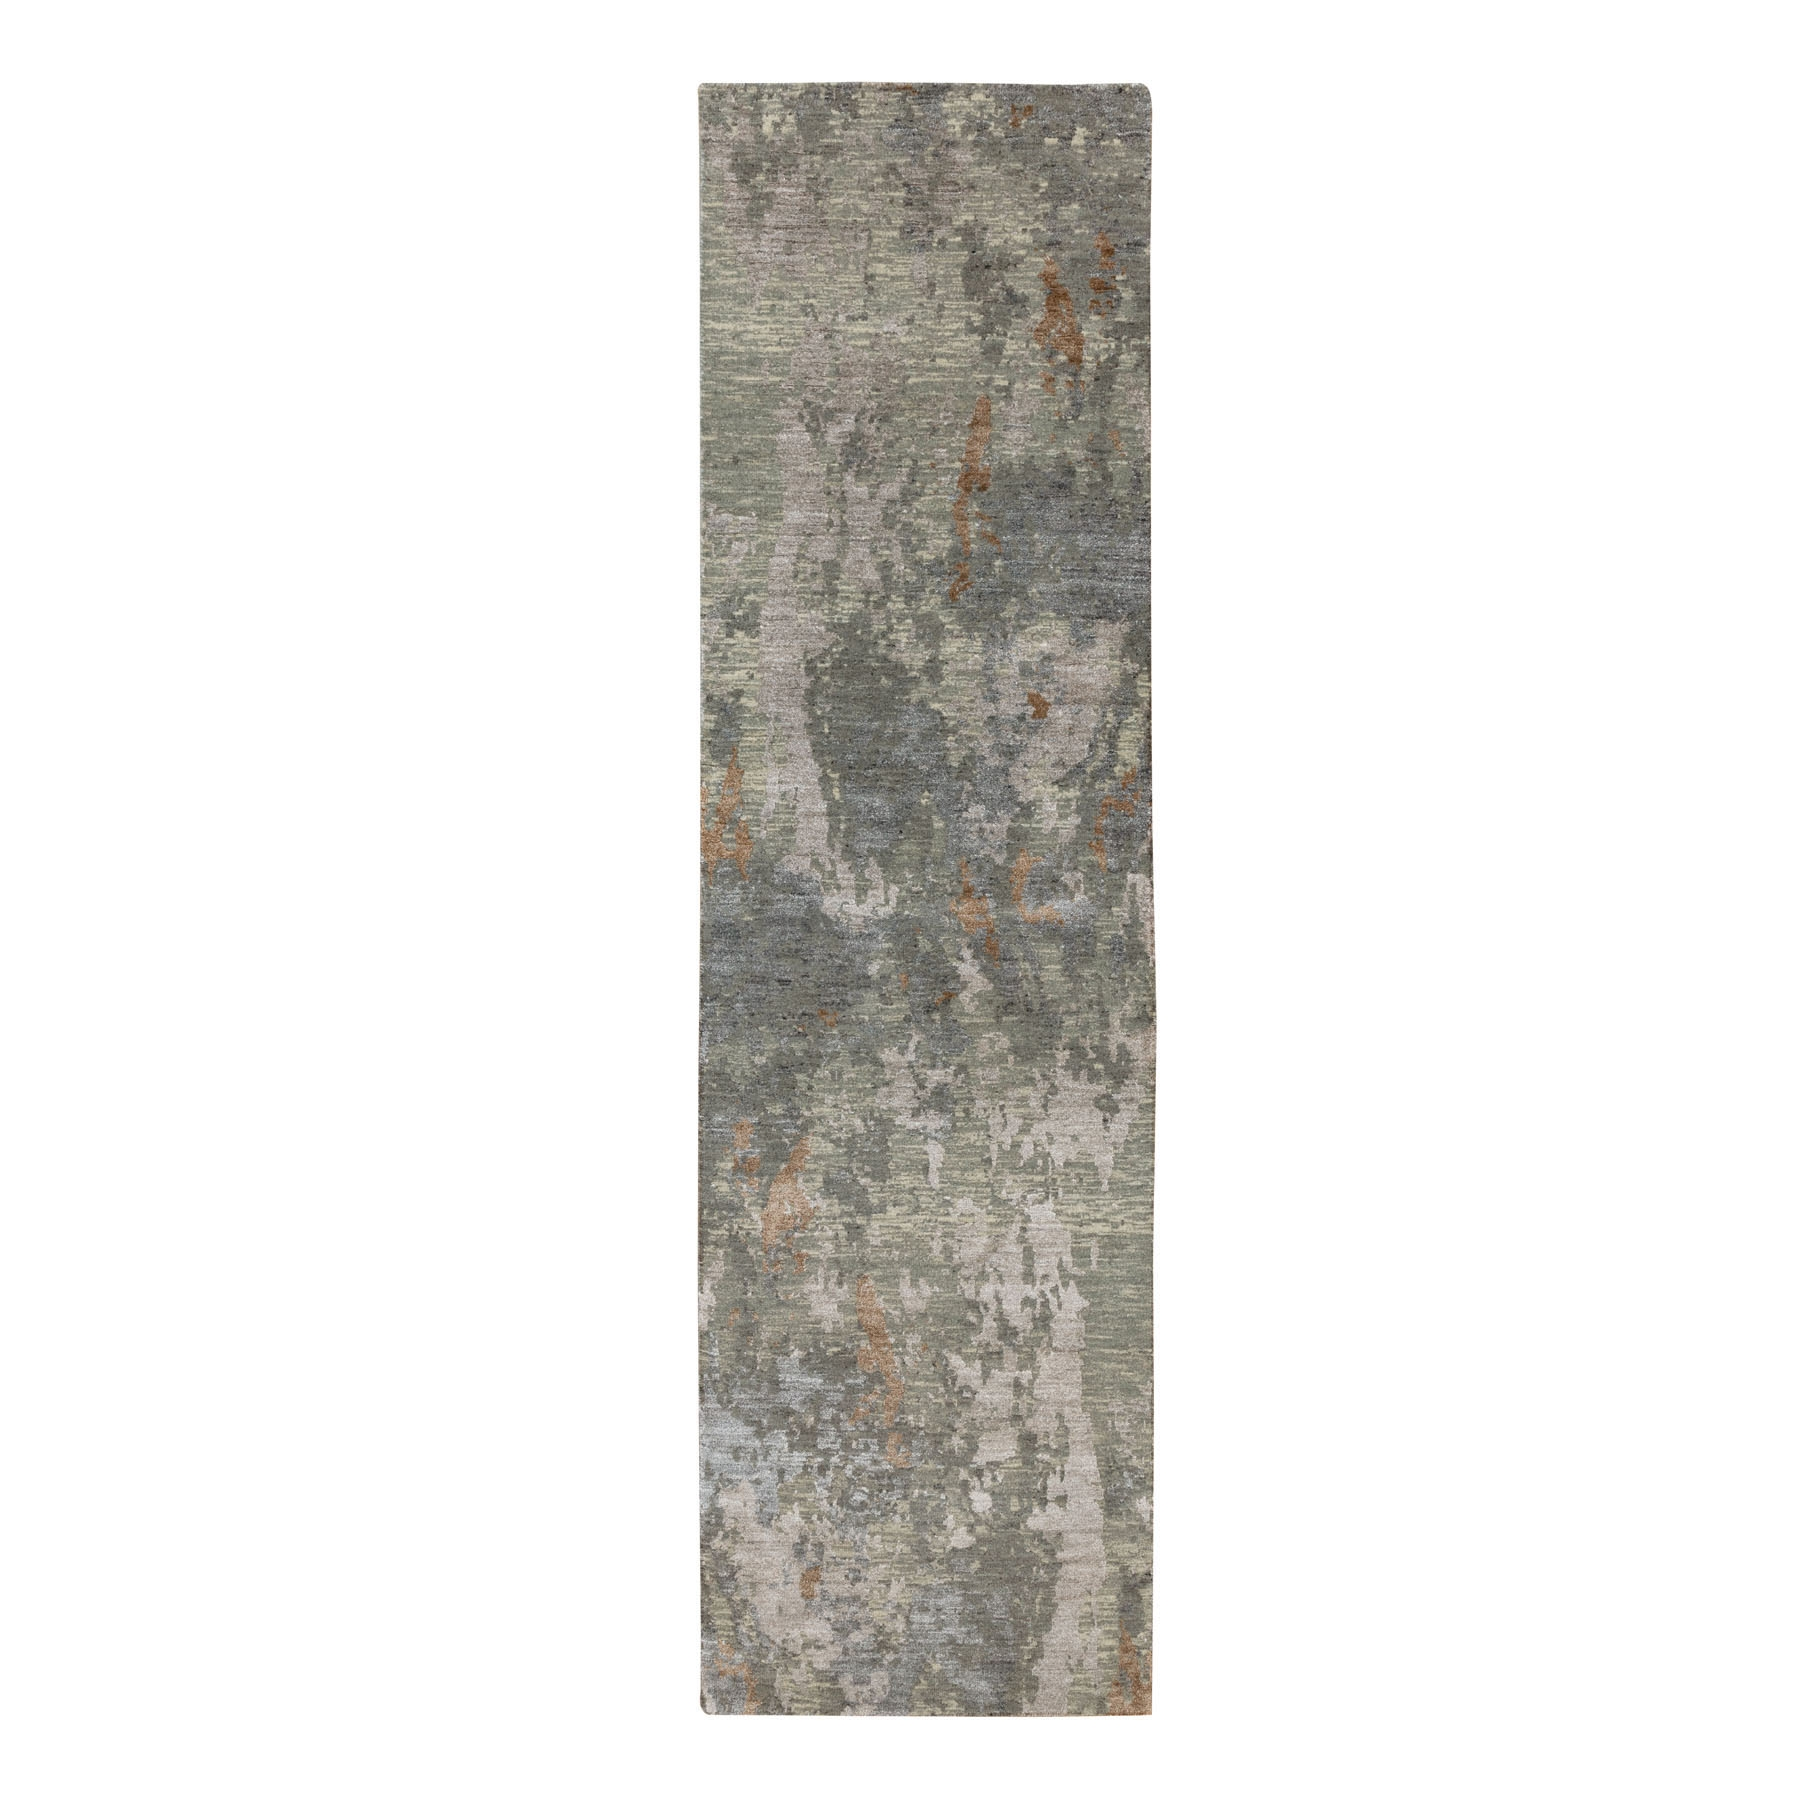 "2'6""x9'10"" Earth Tone Colors Abstract Design Wool And Silk Runner Hand Knotted Oriental Rug"